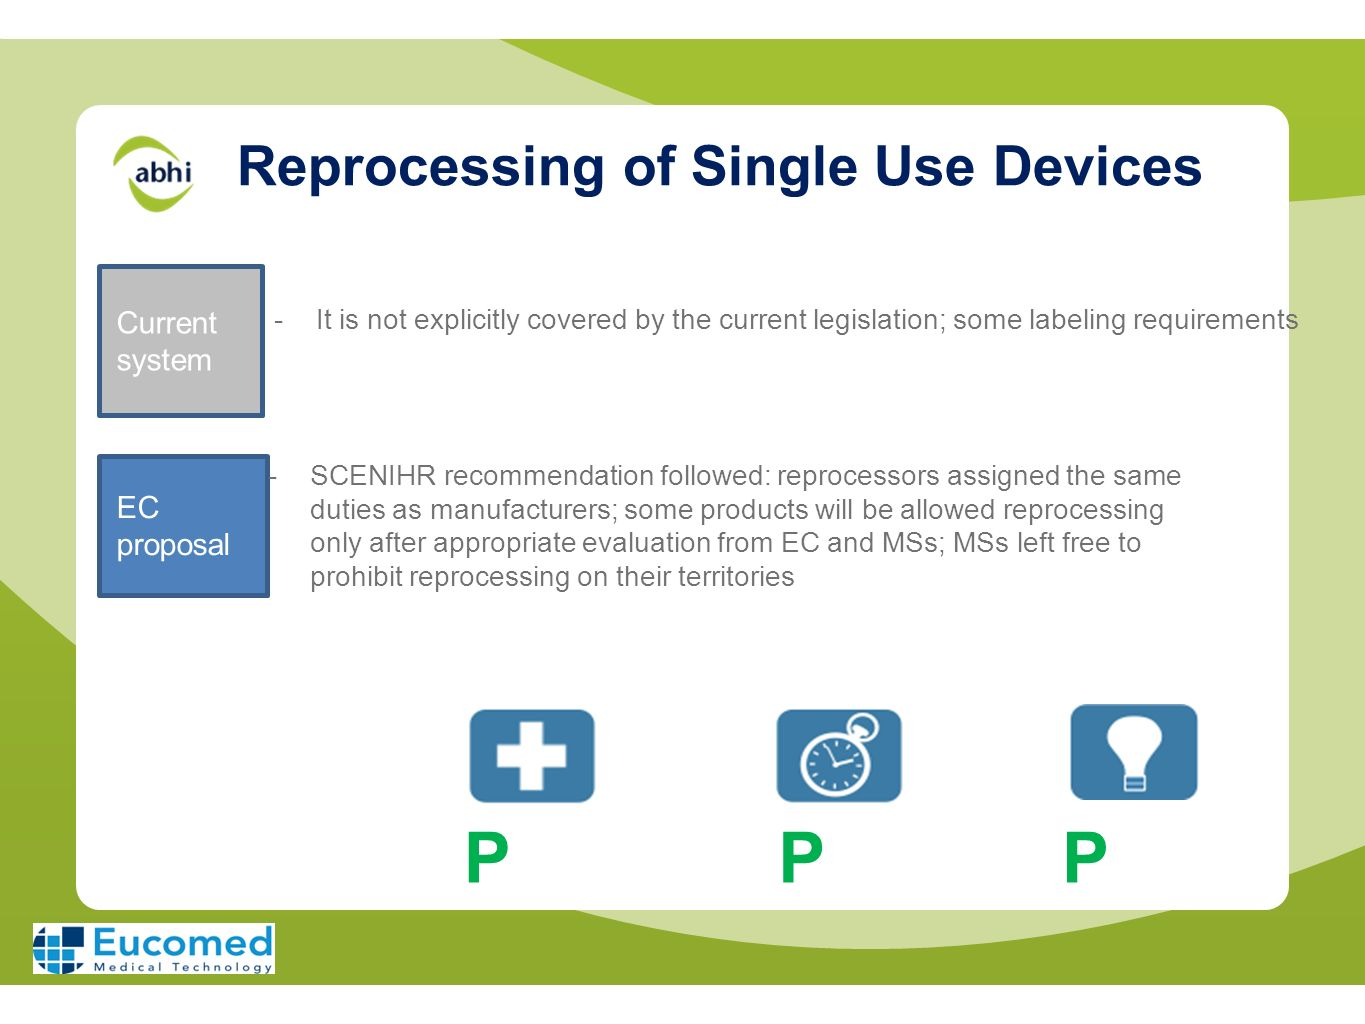 Reprocessing of Single Use Devices